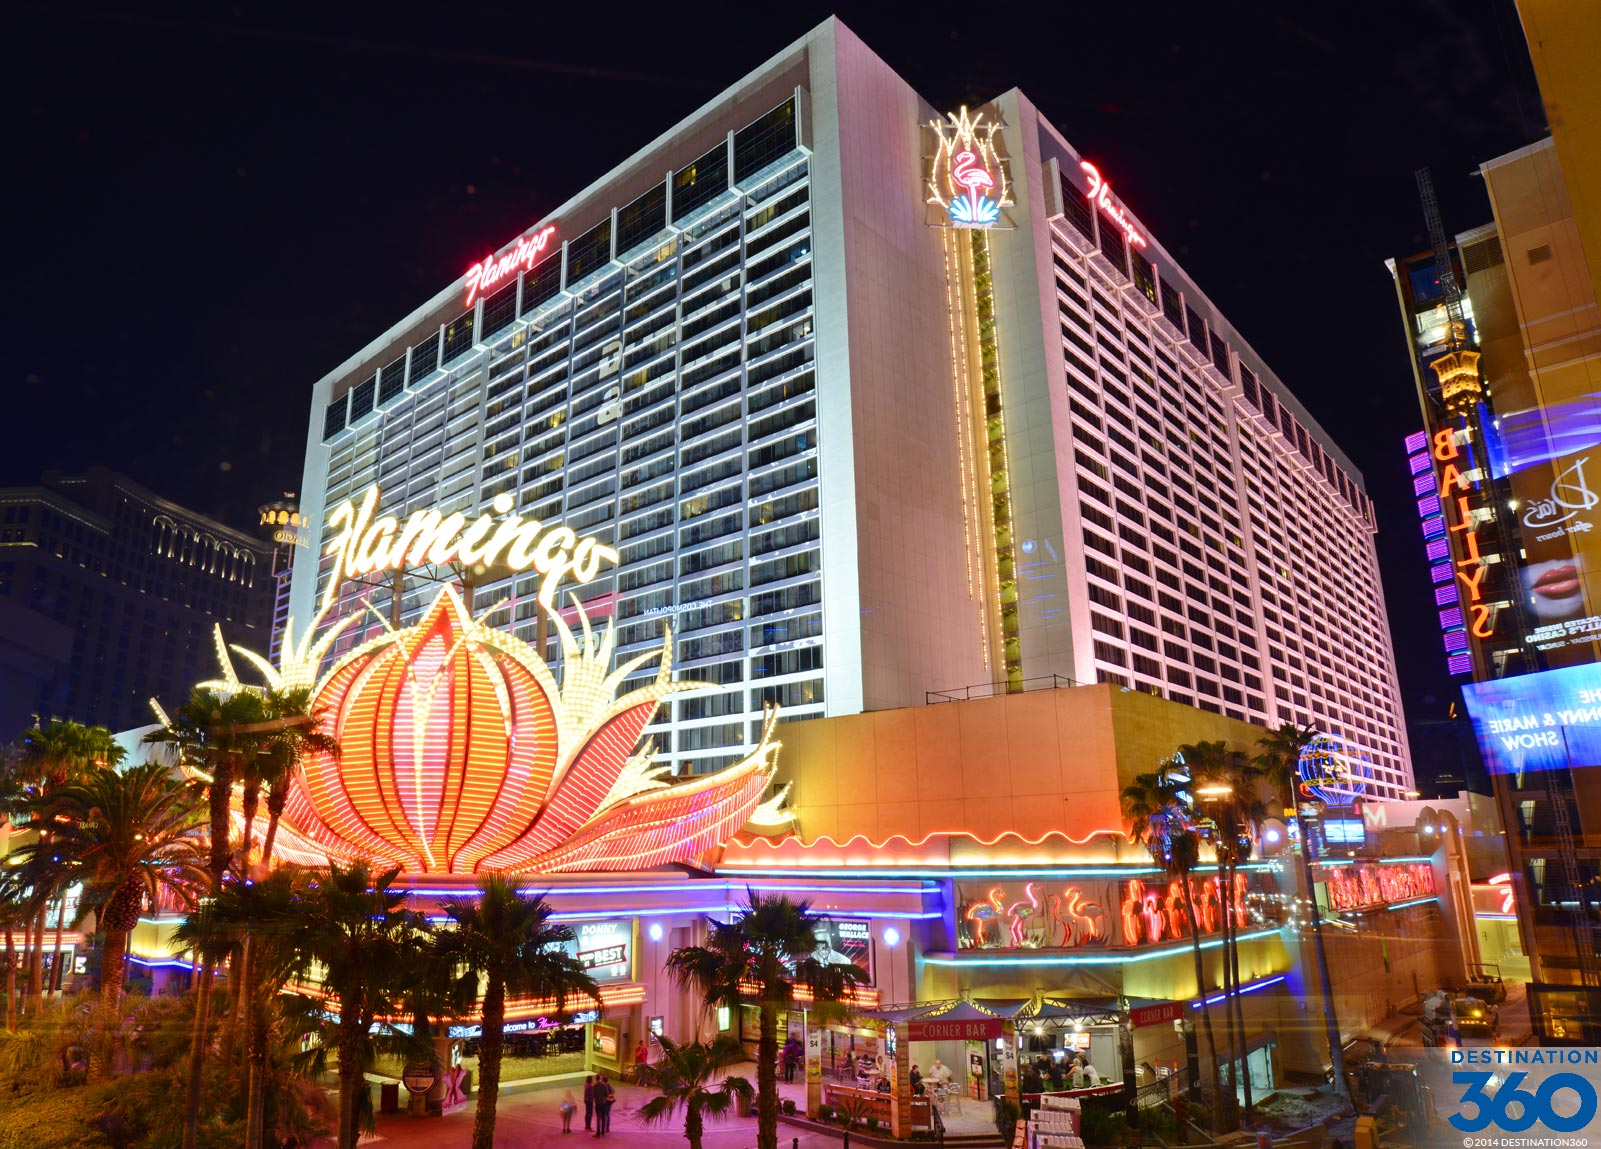 flamingo casino vegas